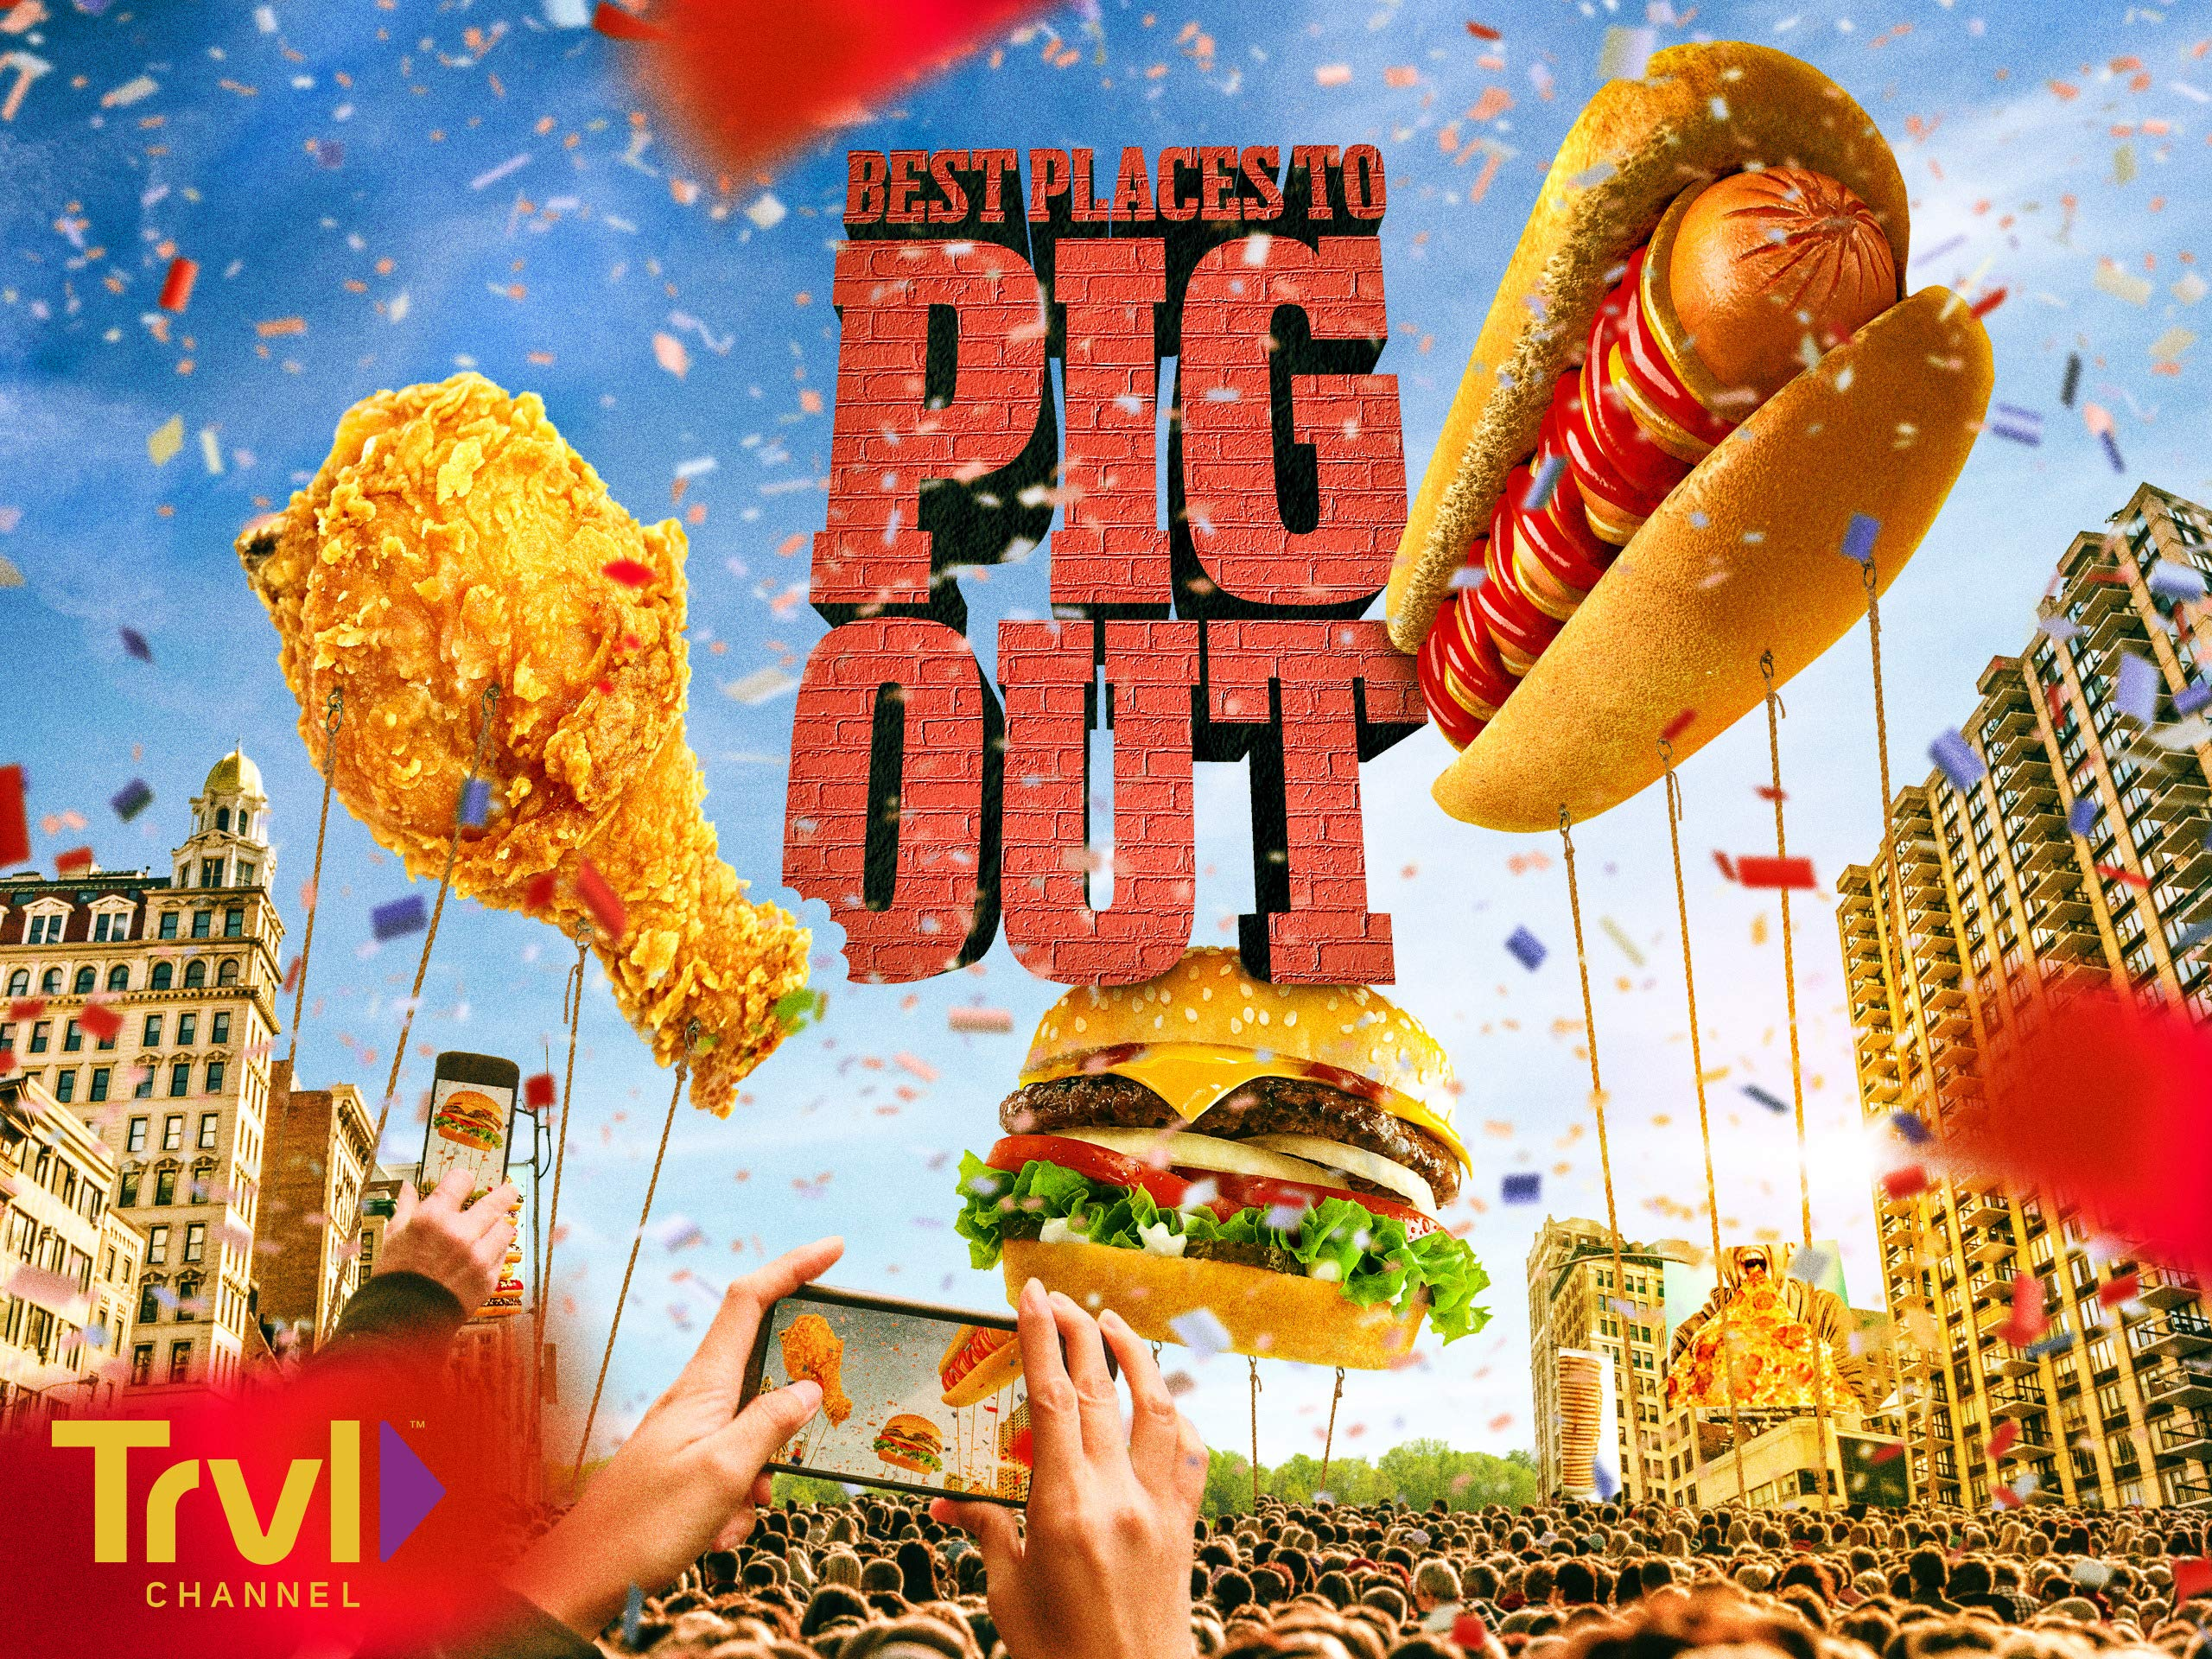 Best Place to Pig Out